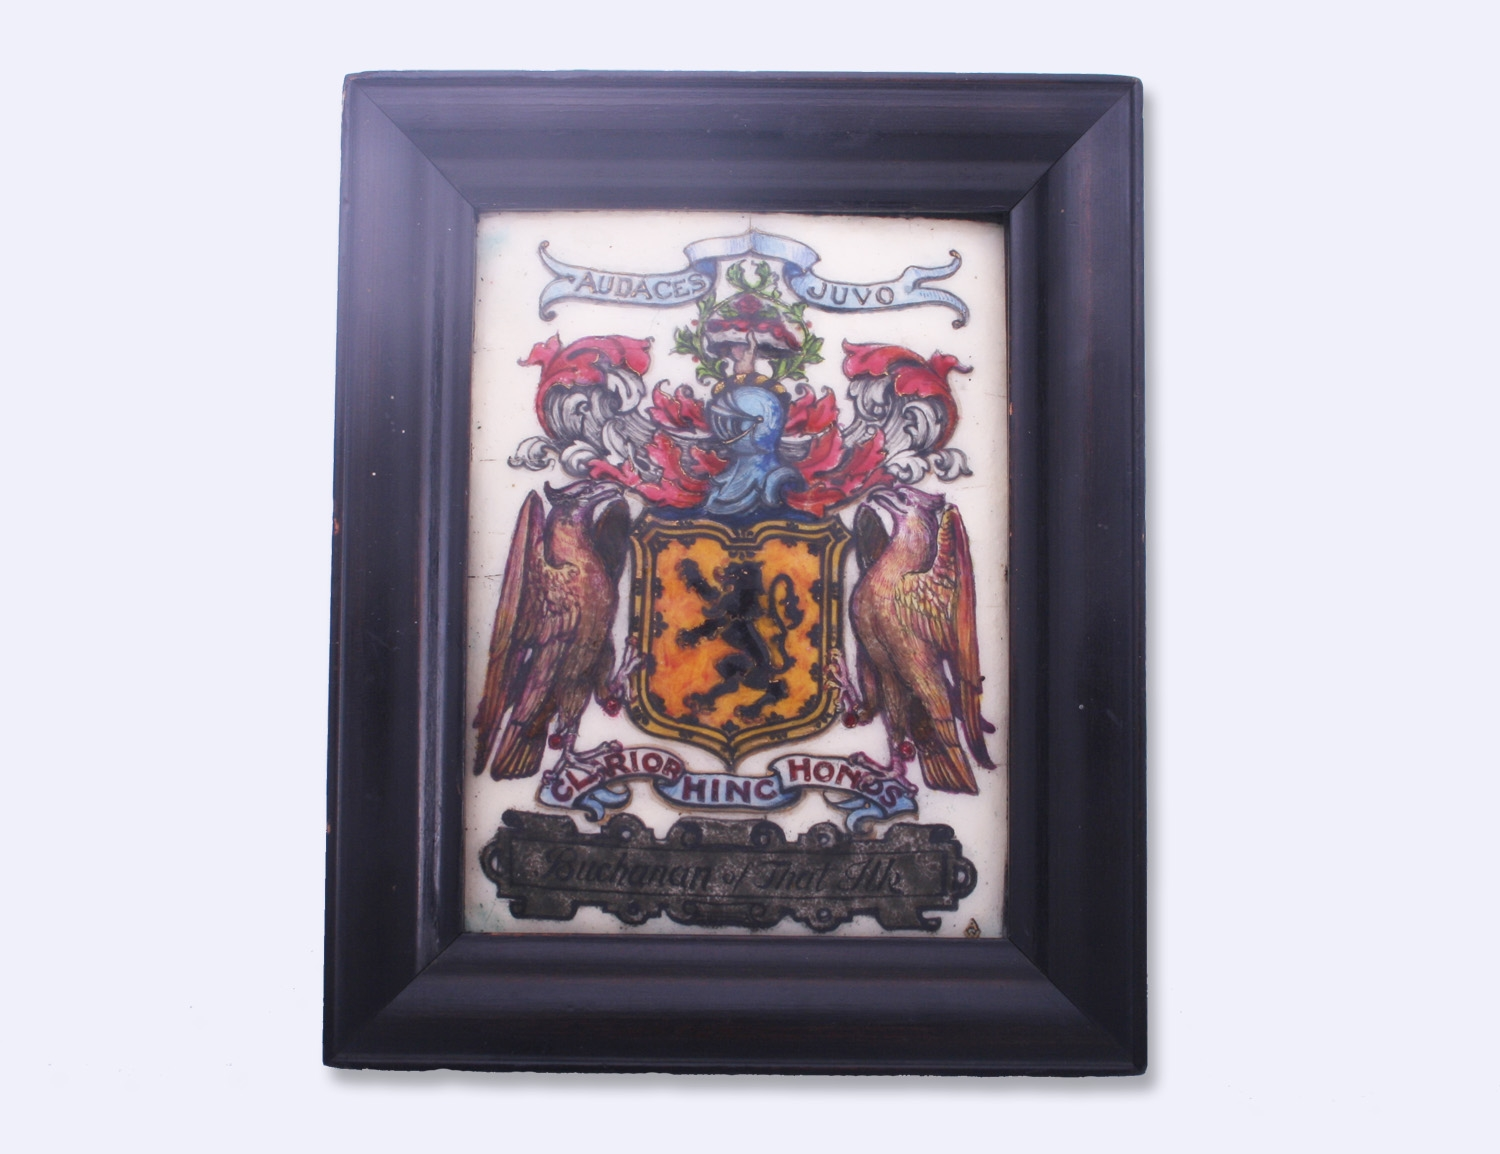 Fine Arts Amp Crafts Armorial Enamel Framed Plaque